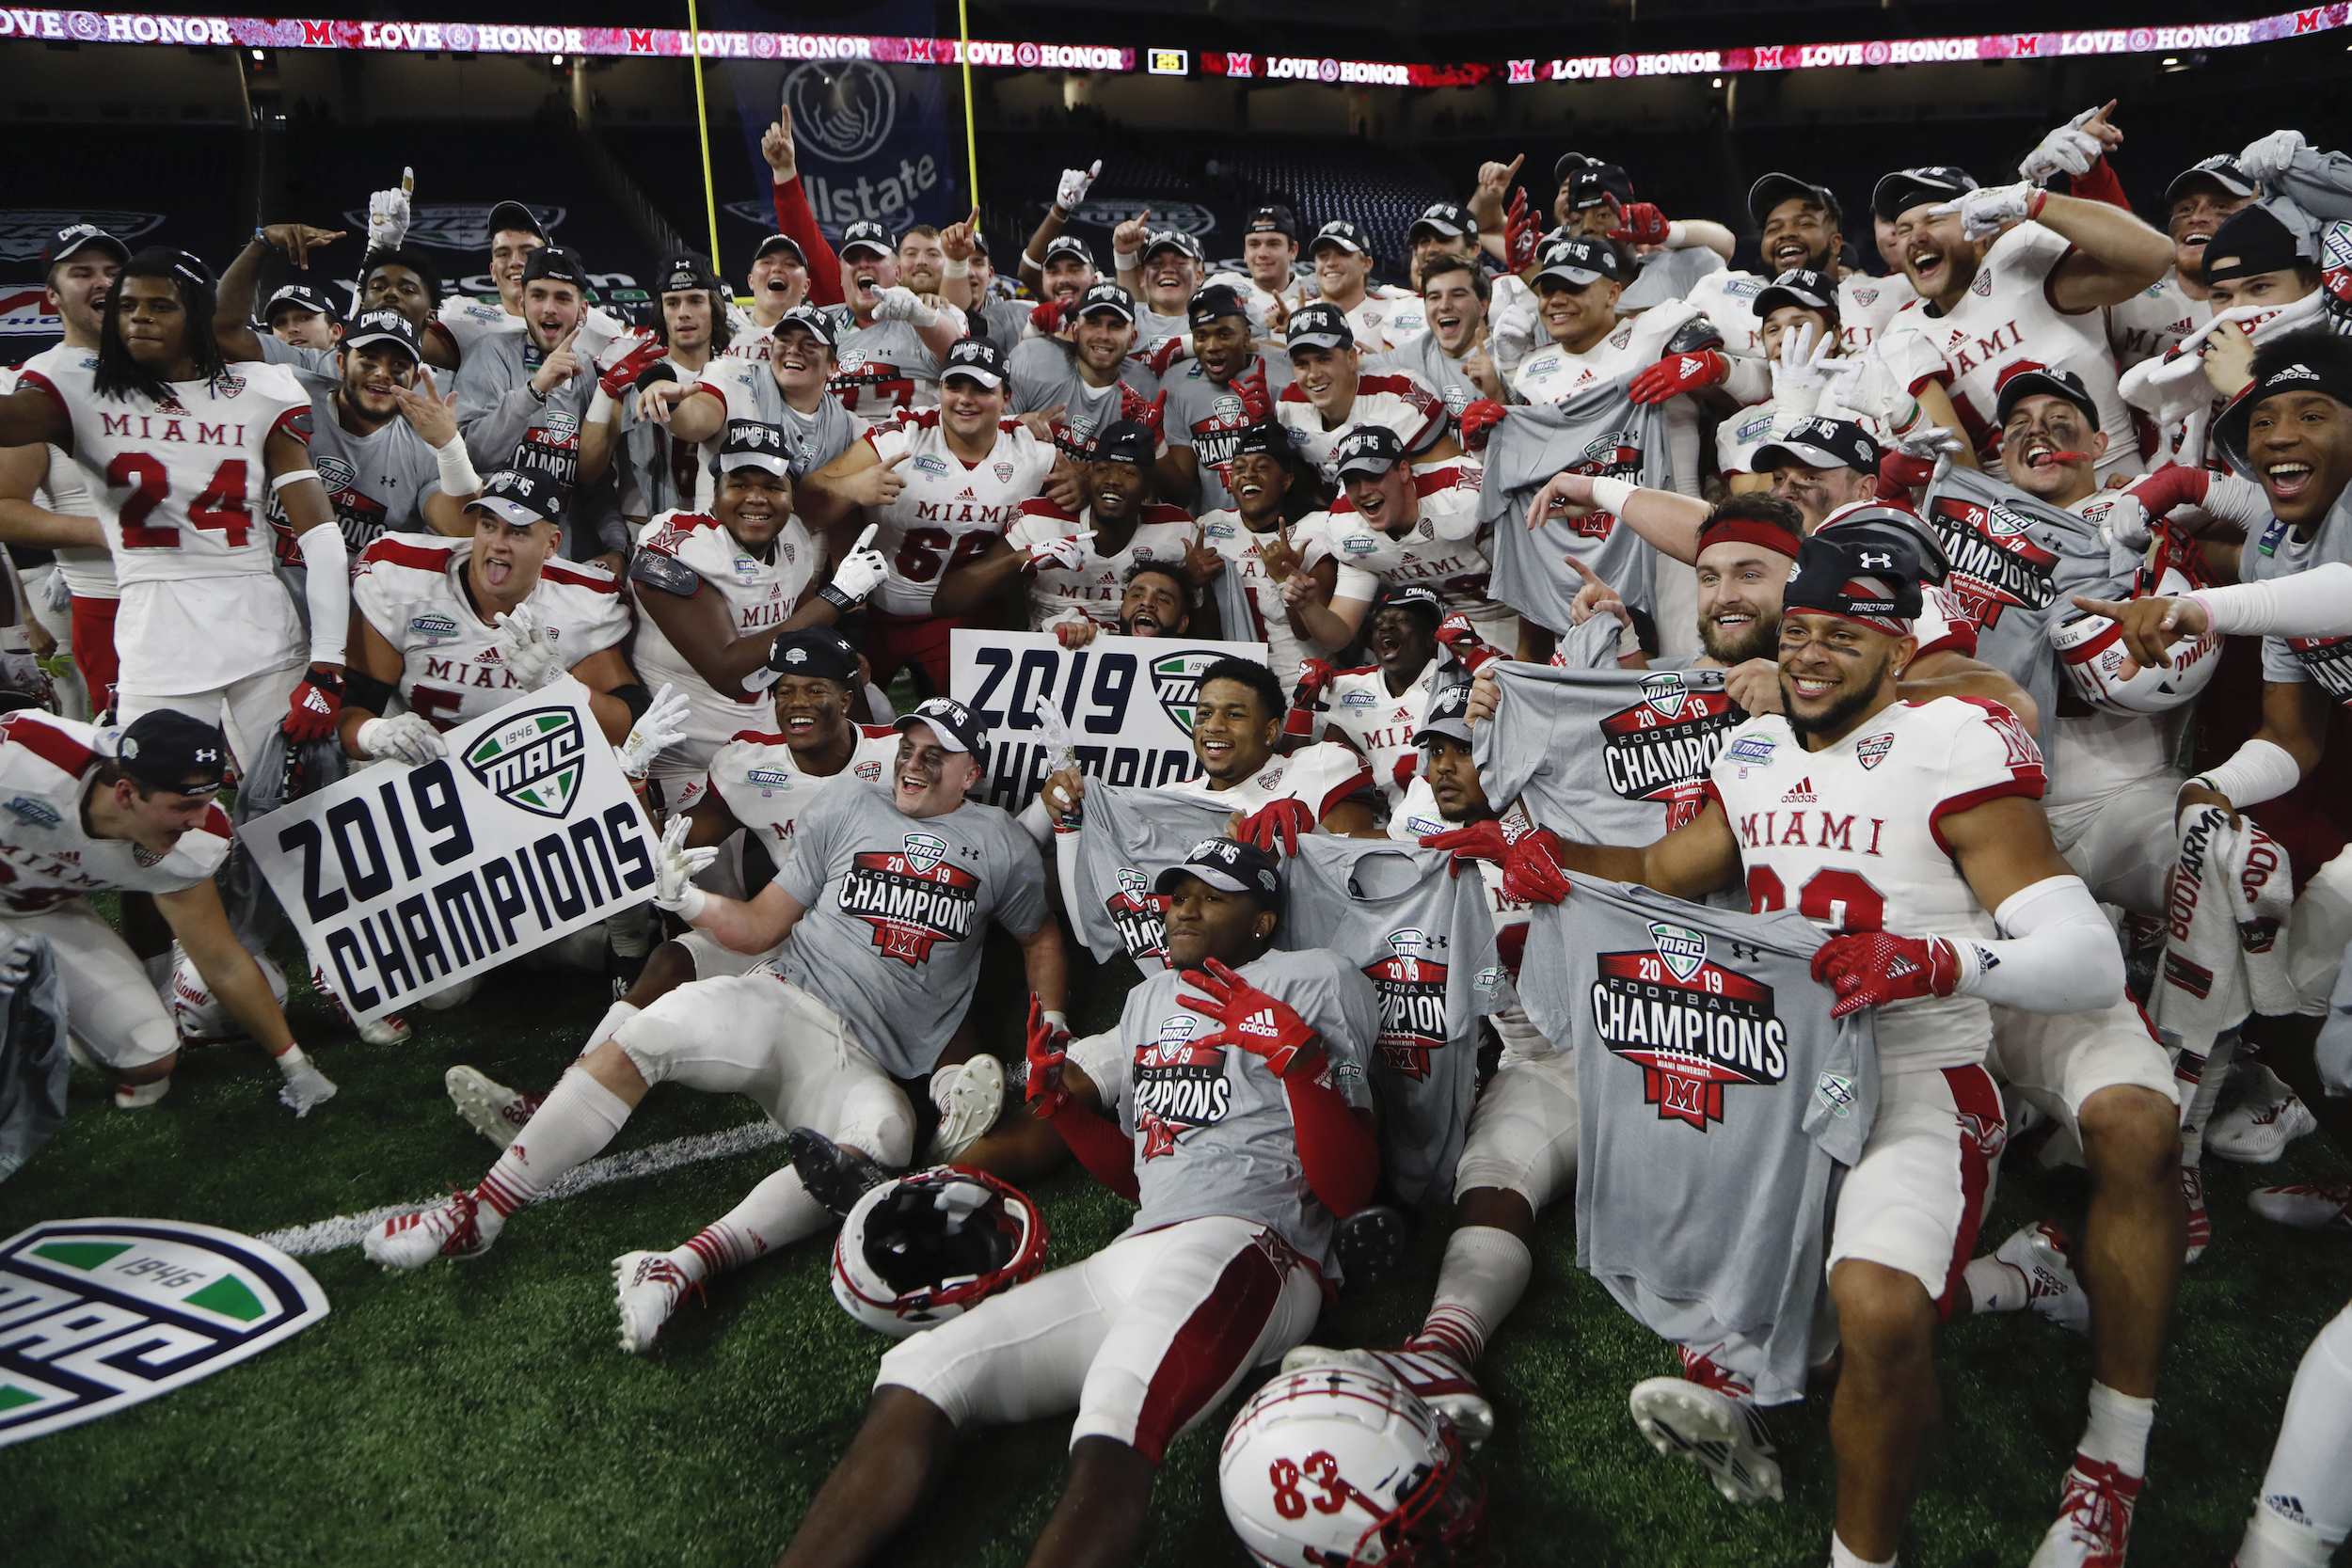 Members of the Miami of Ohio team pose on the field after the Mid-American Conference championship NCAA college football game against Central Michigan, on Dec. 7, 2019, in Detroit.